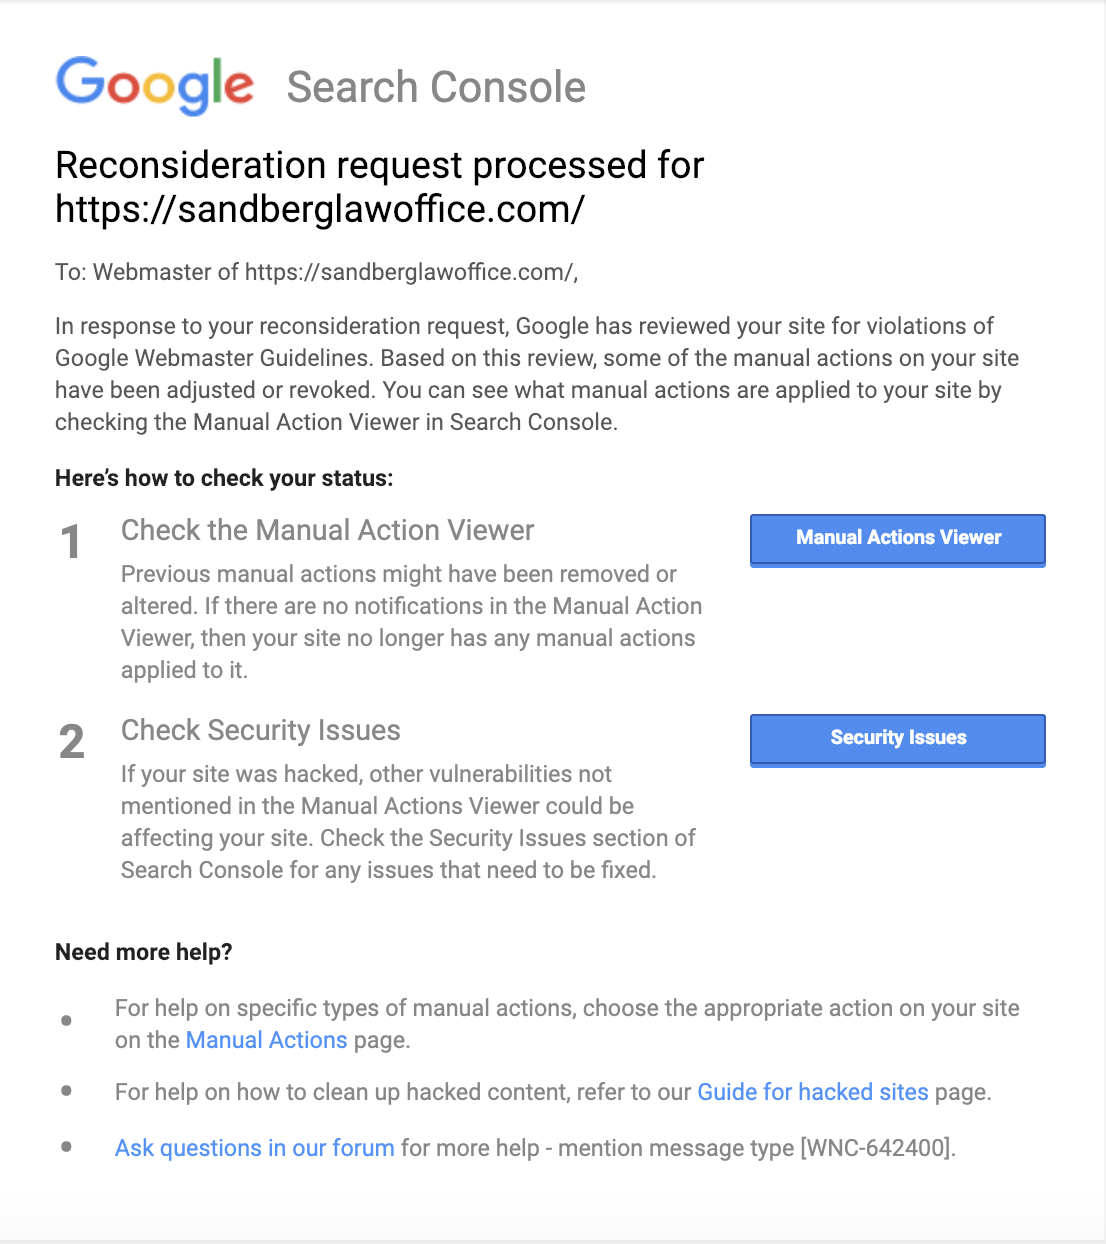 How To Fix This Site May Be Hacked Message On Google: Data